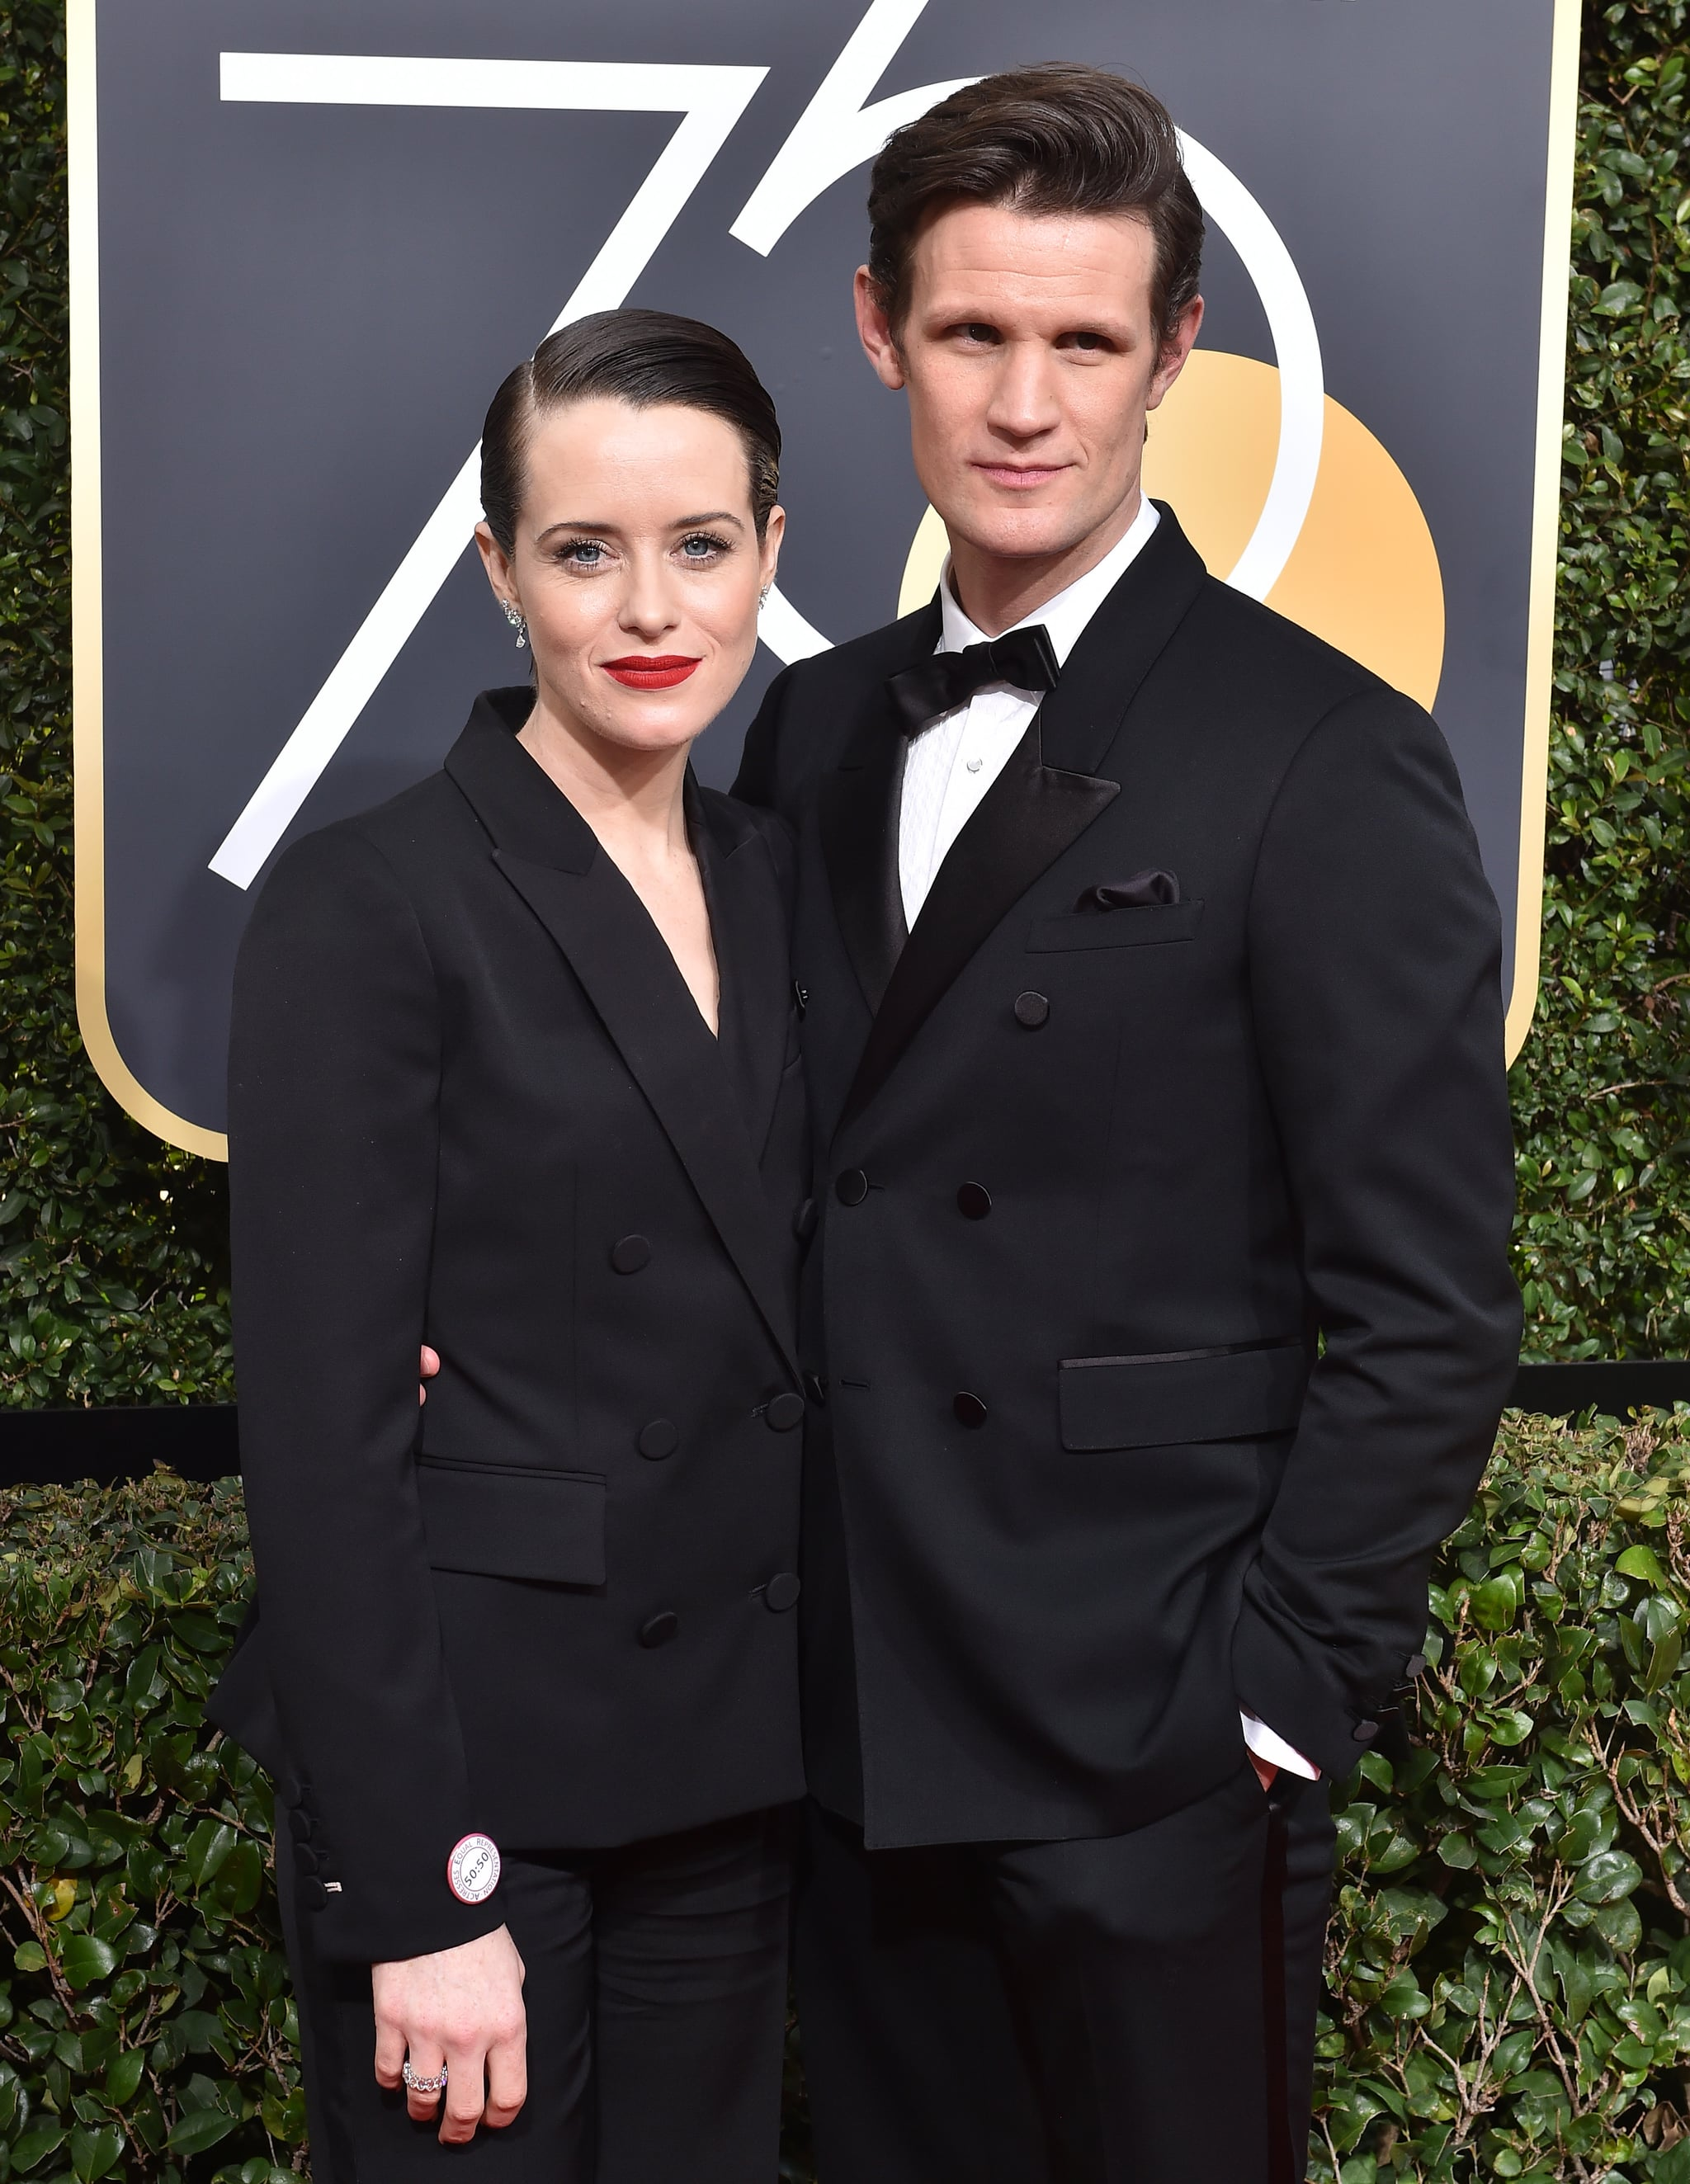 BEVERLY HILLS, CA - JANUARY 07:  Actors Claire Foy and Matt Smith attend the 75th Annual Golden Globe Awards at The Beverly Hilton Hotel on January 7, 2018 in Beverly Hills, California.  (Photo by Axelle/Bauer-Griffin/FilmMagic)